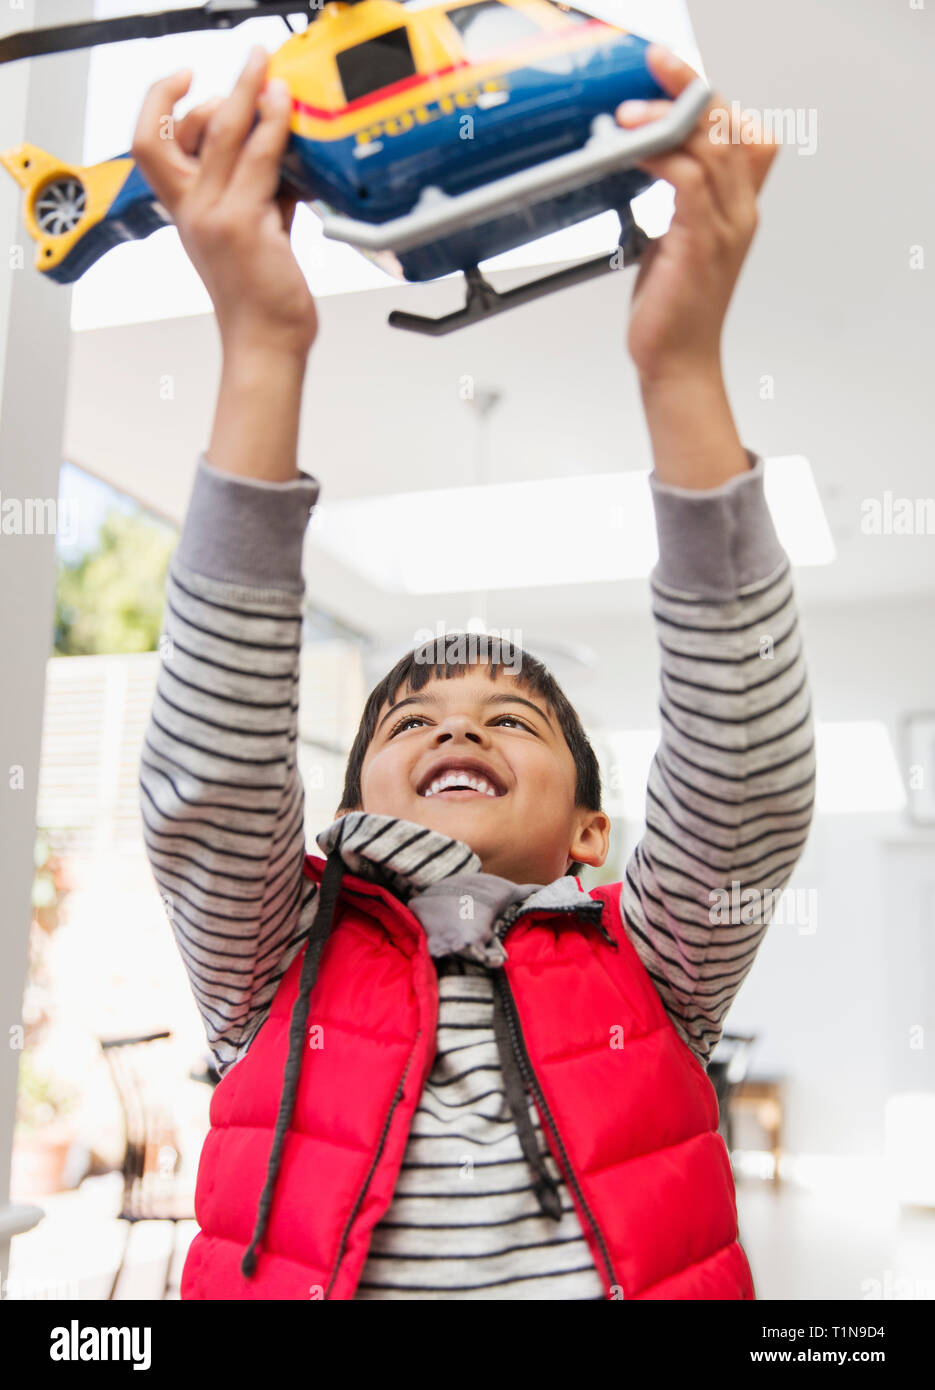 Happy boy playing with toy helicopter Stock Photo